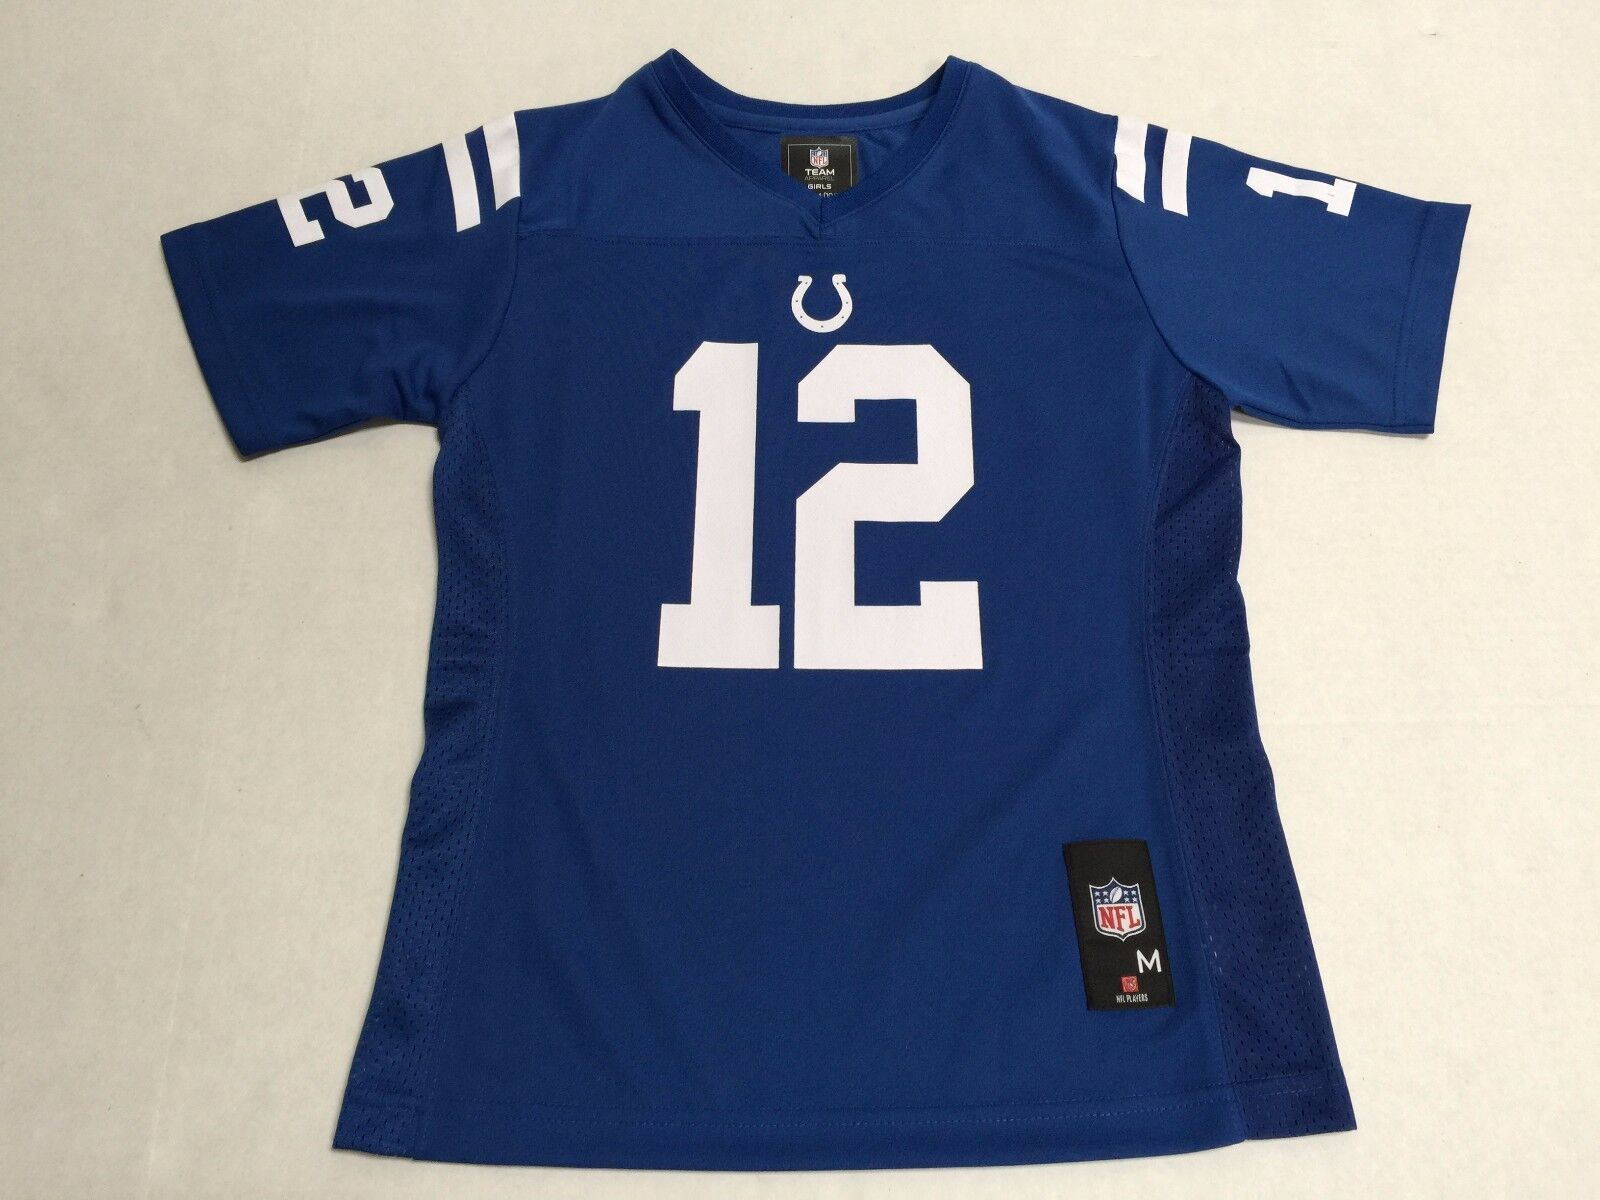 cfb4daad4 Indianapolis Colts Official NFL Apparel Kids Youth Size Andrew Luck Jersey  New